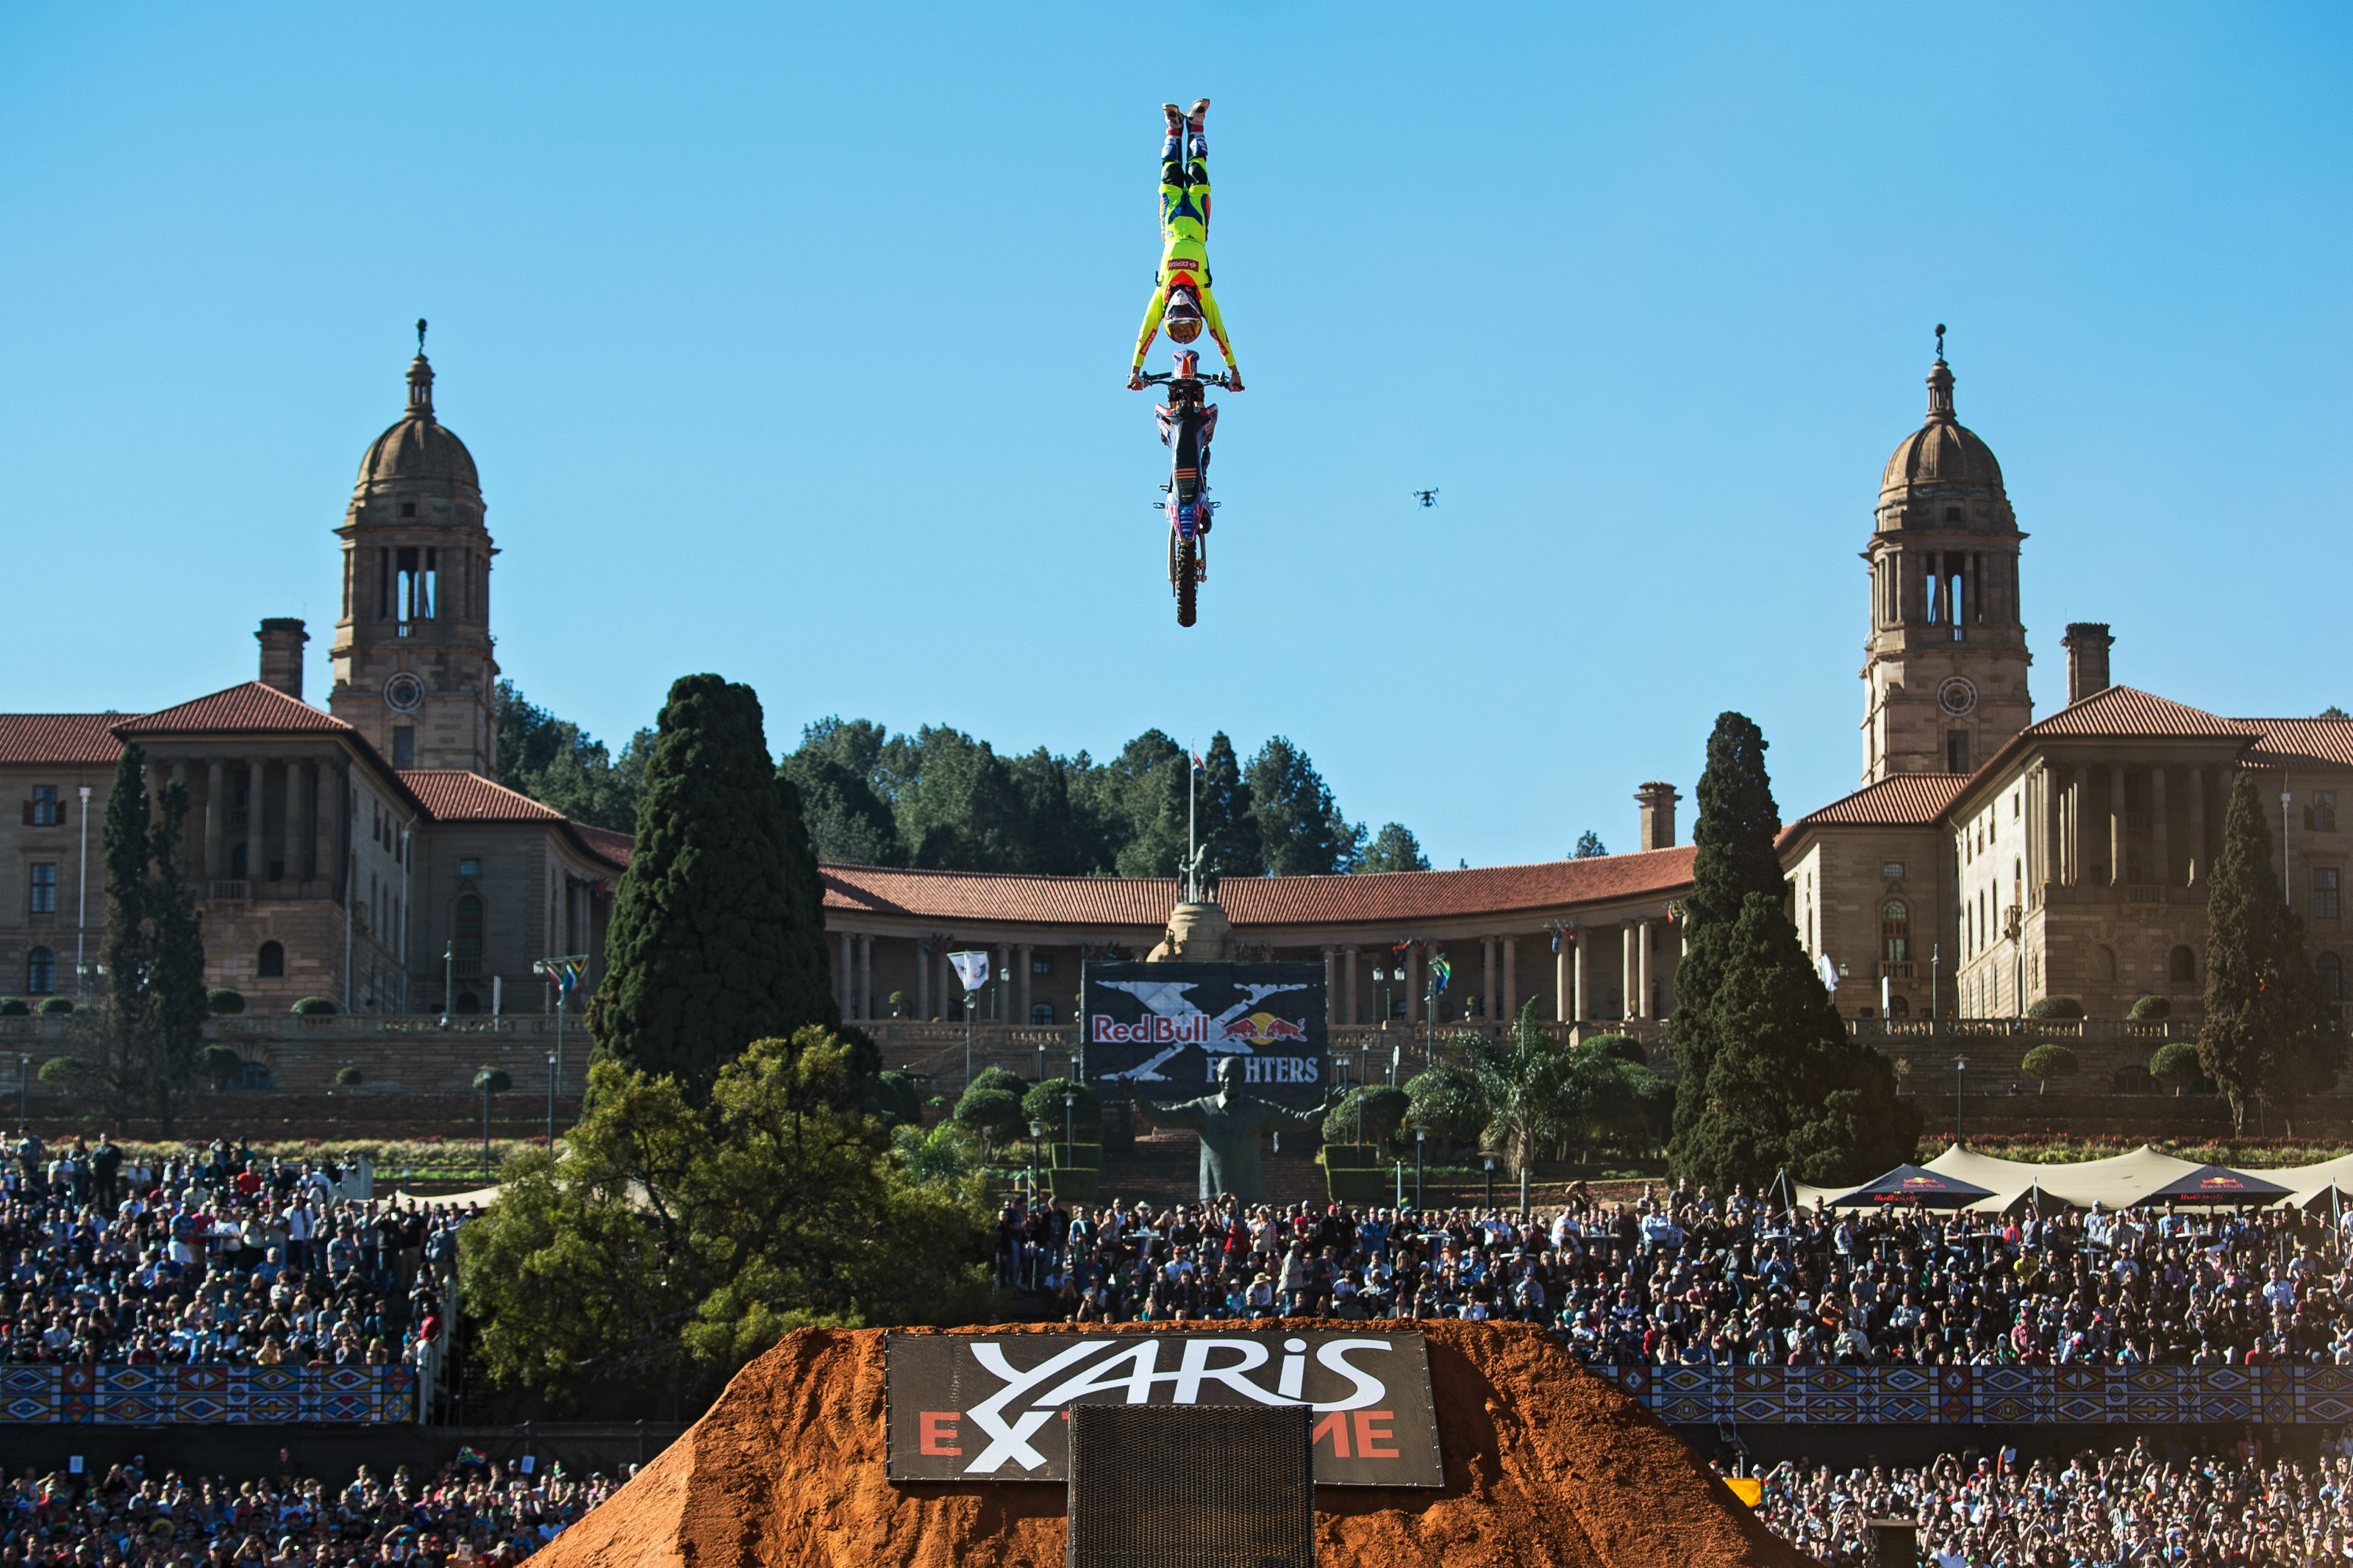 Red Bull X-Fighters South Africa photographed by Joerg Mitter, Craig Kolesky